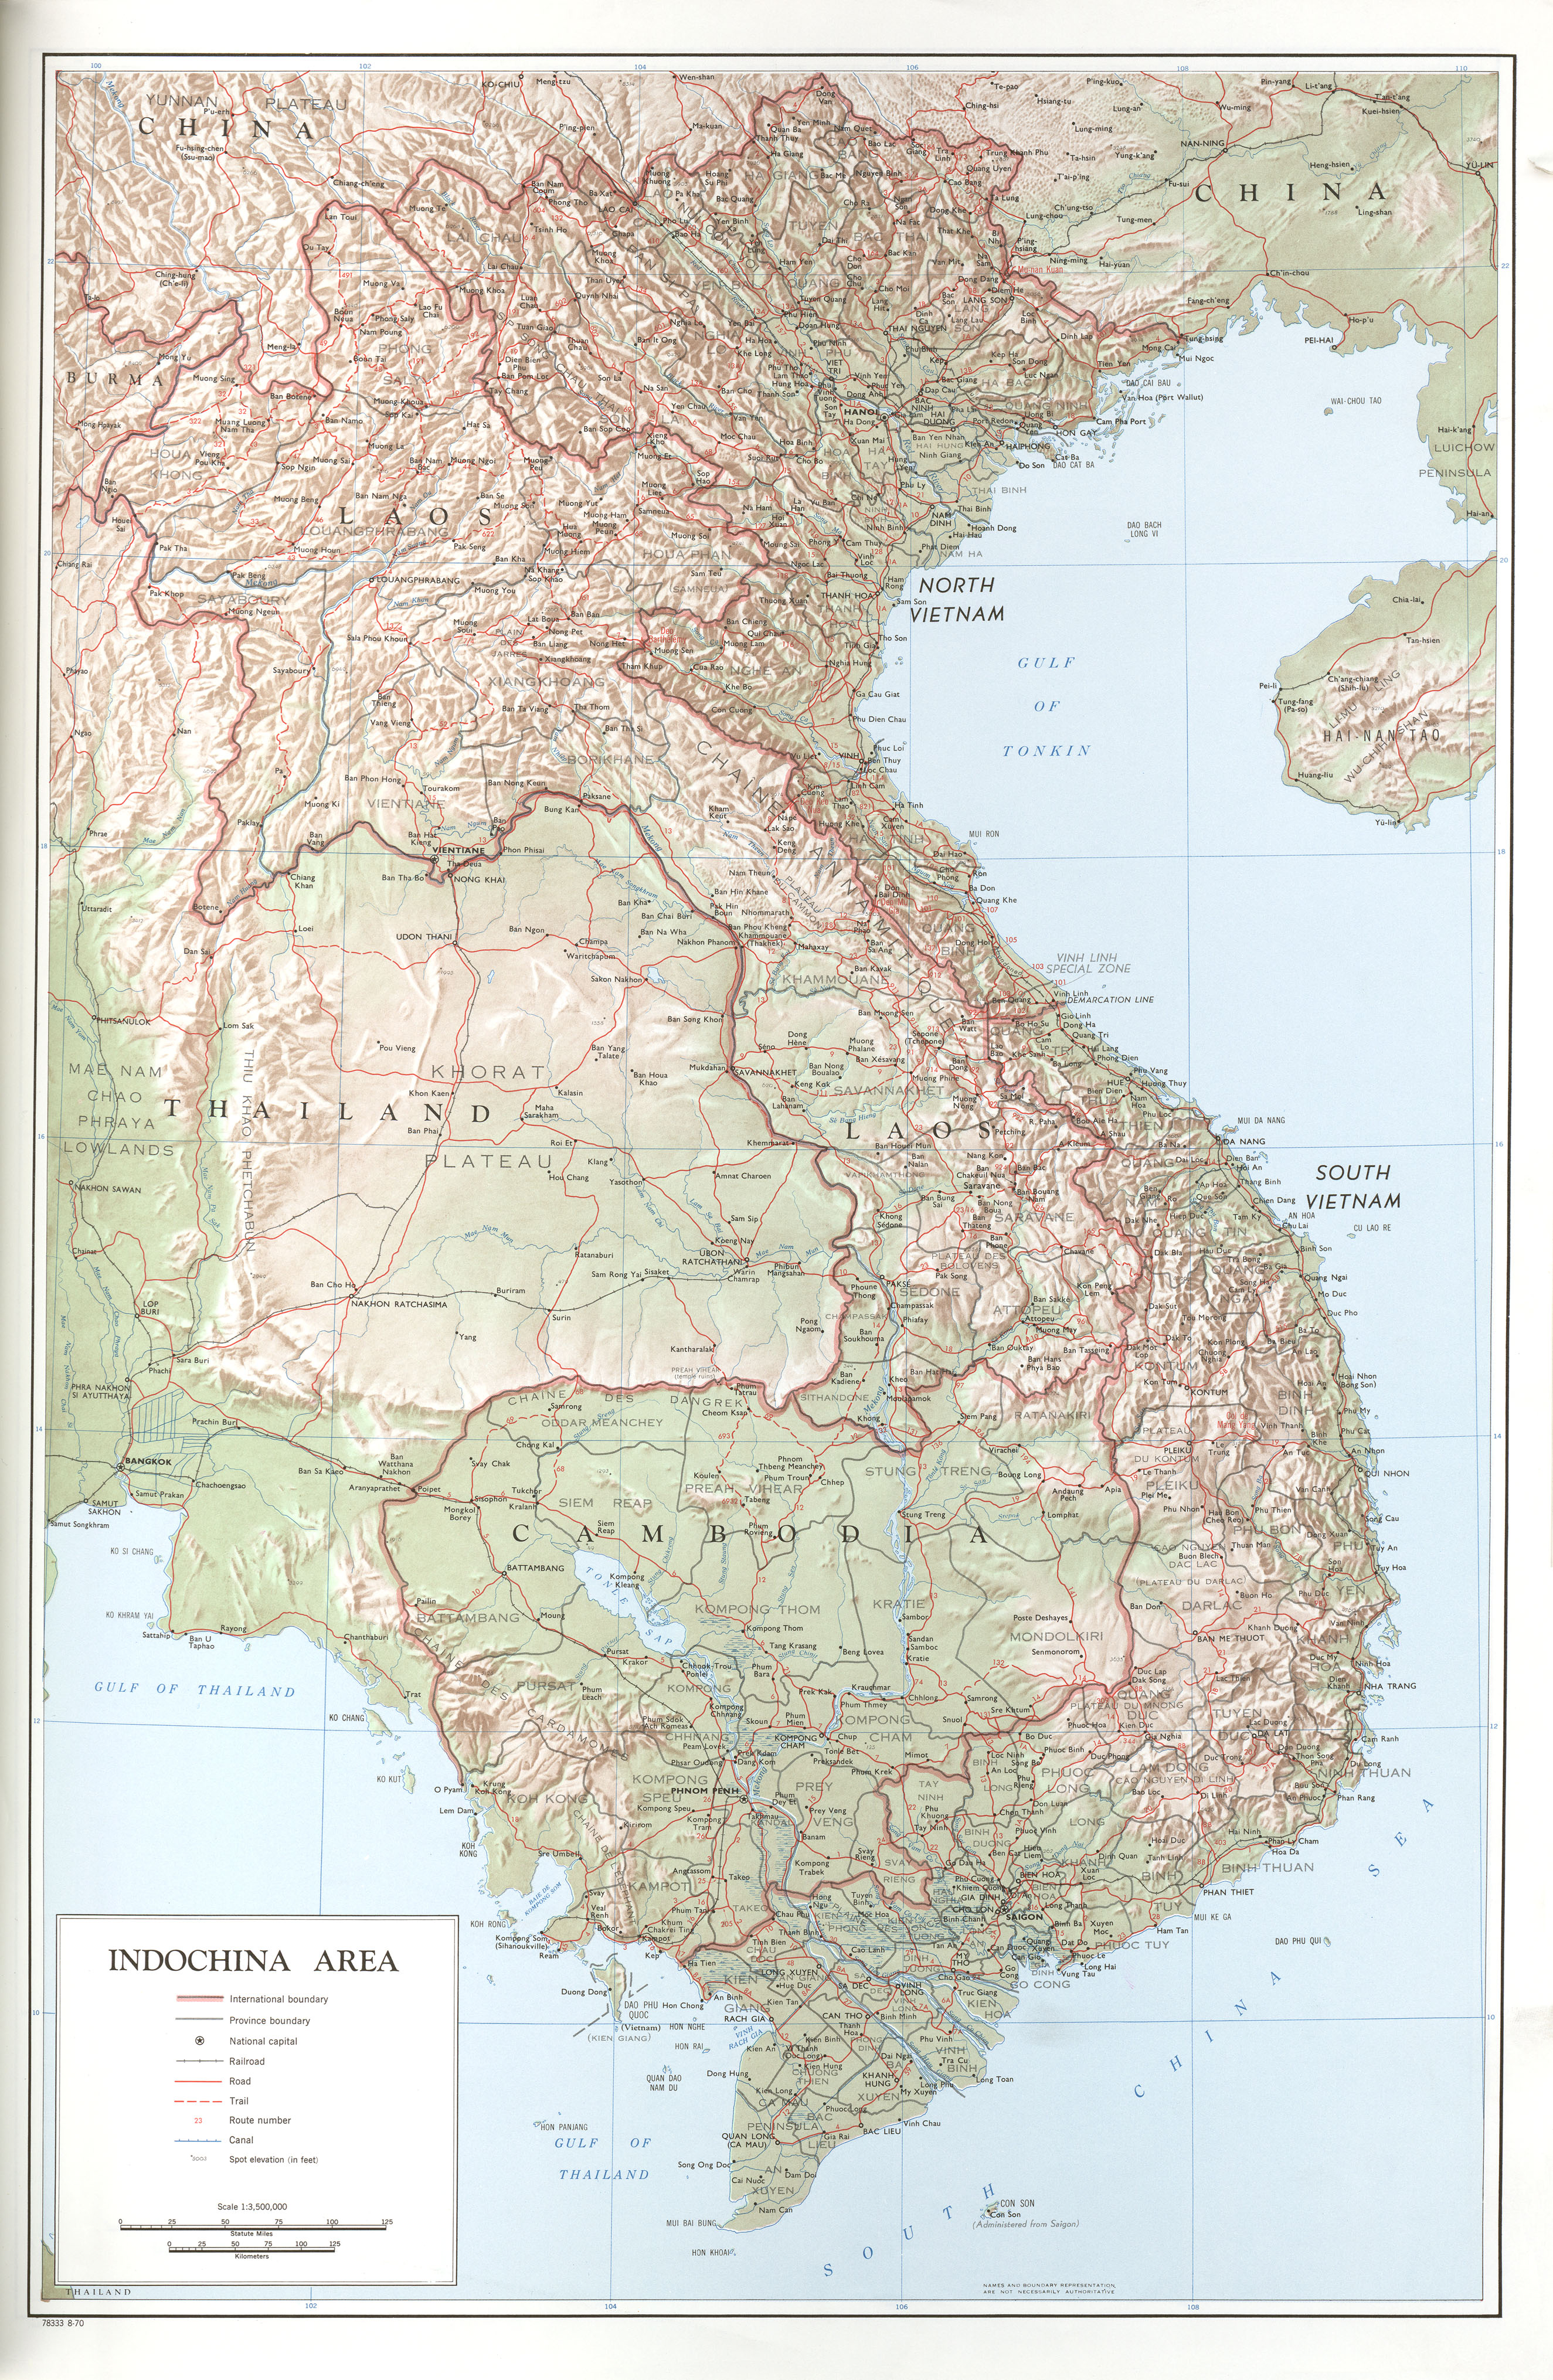 Thailand Topographic Map.Map Collection Of Asia Asian Studies Loyola University Chicago